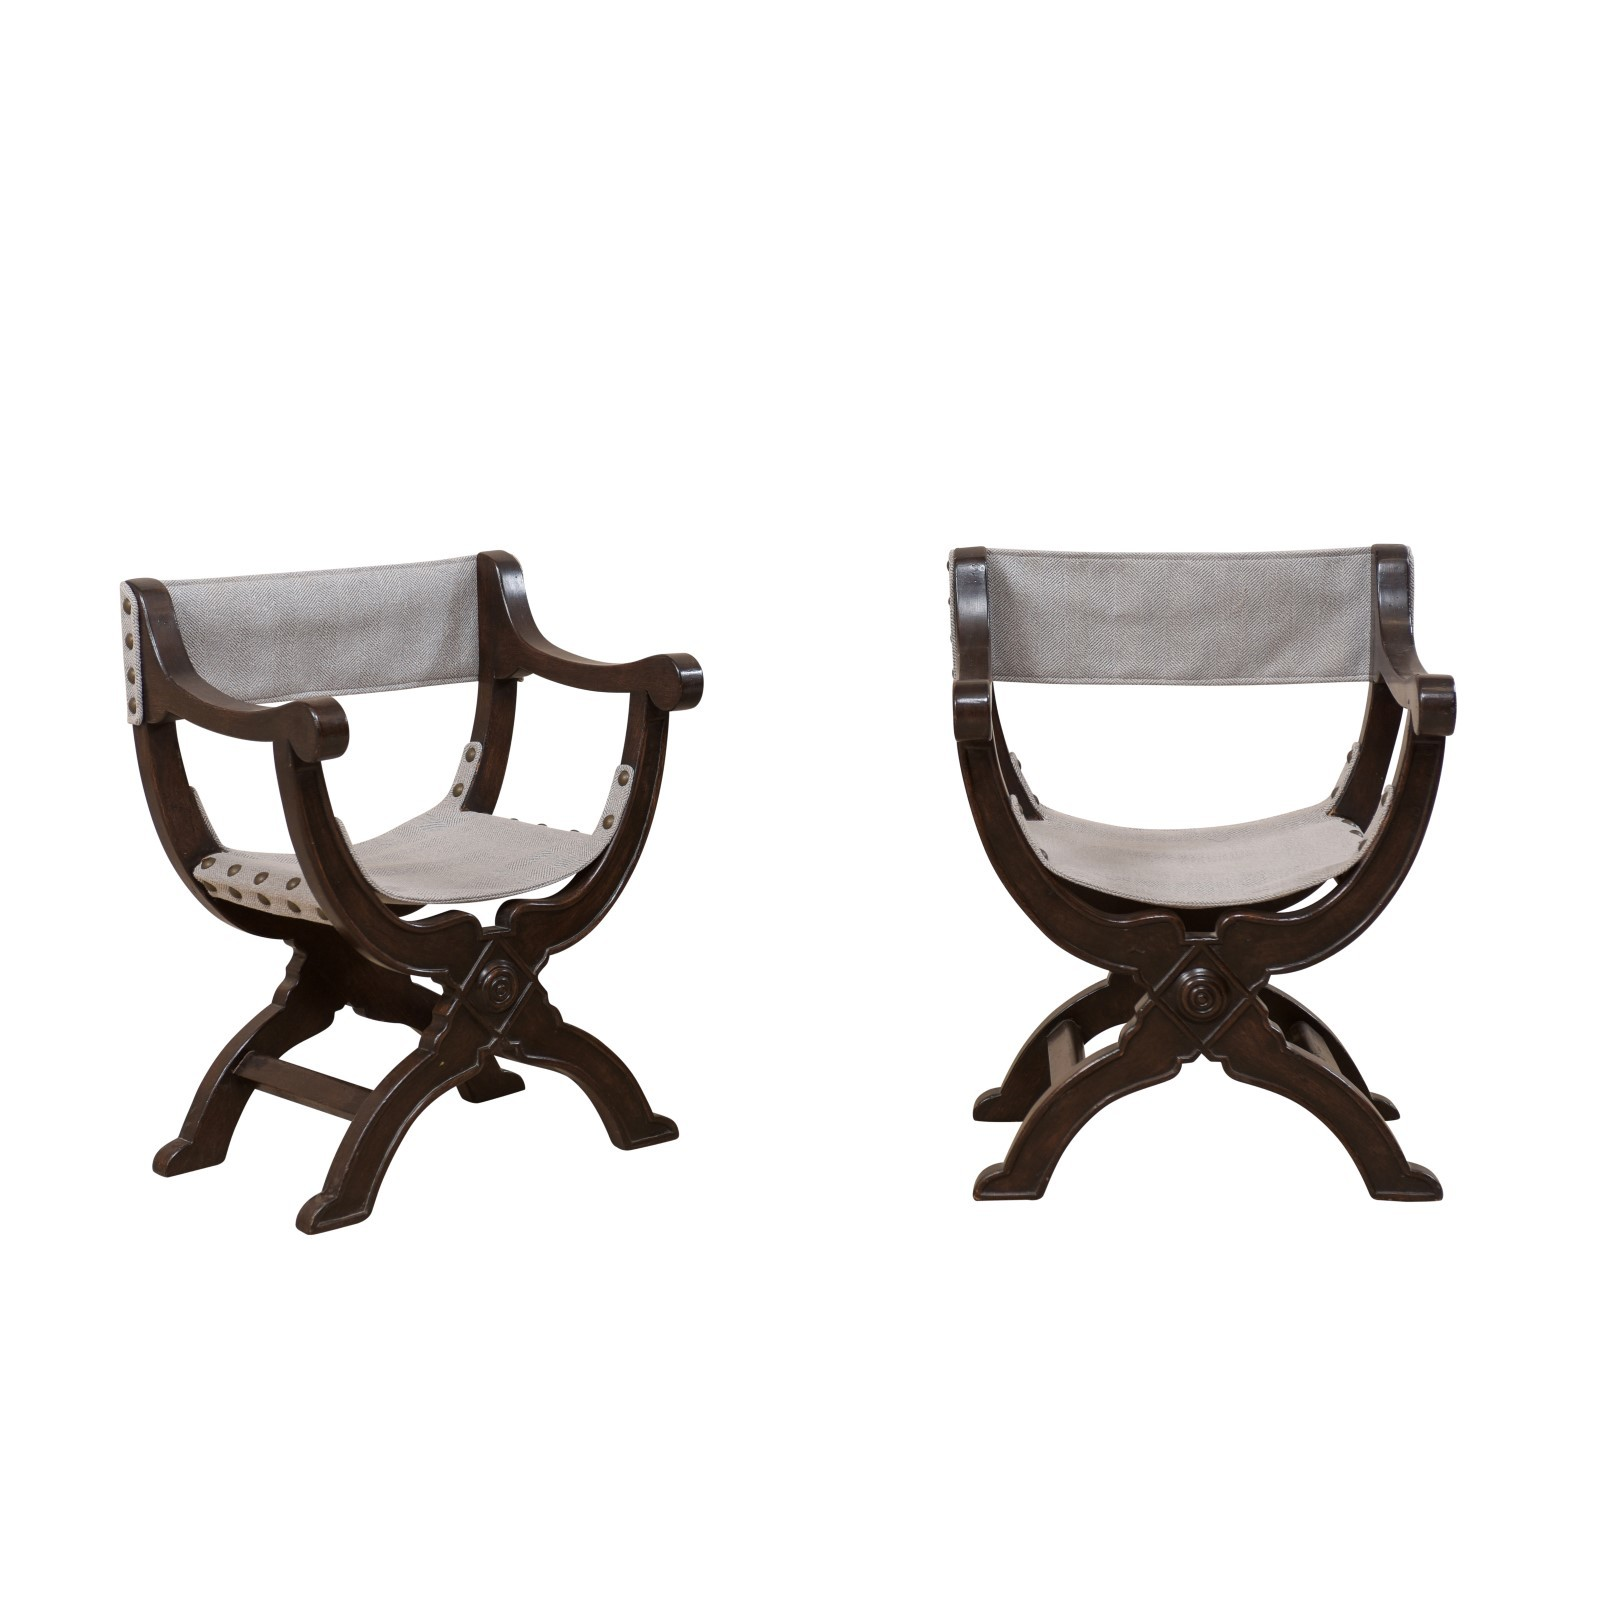 Italian Antique Dante Style Chairs